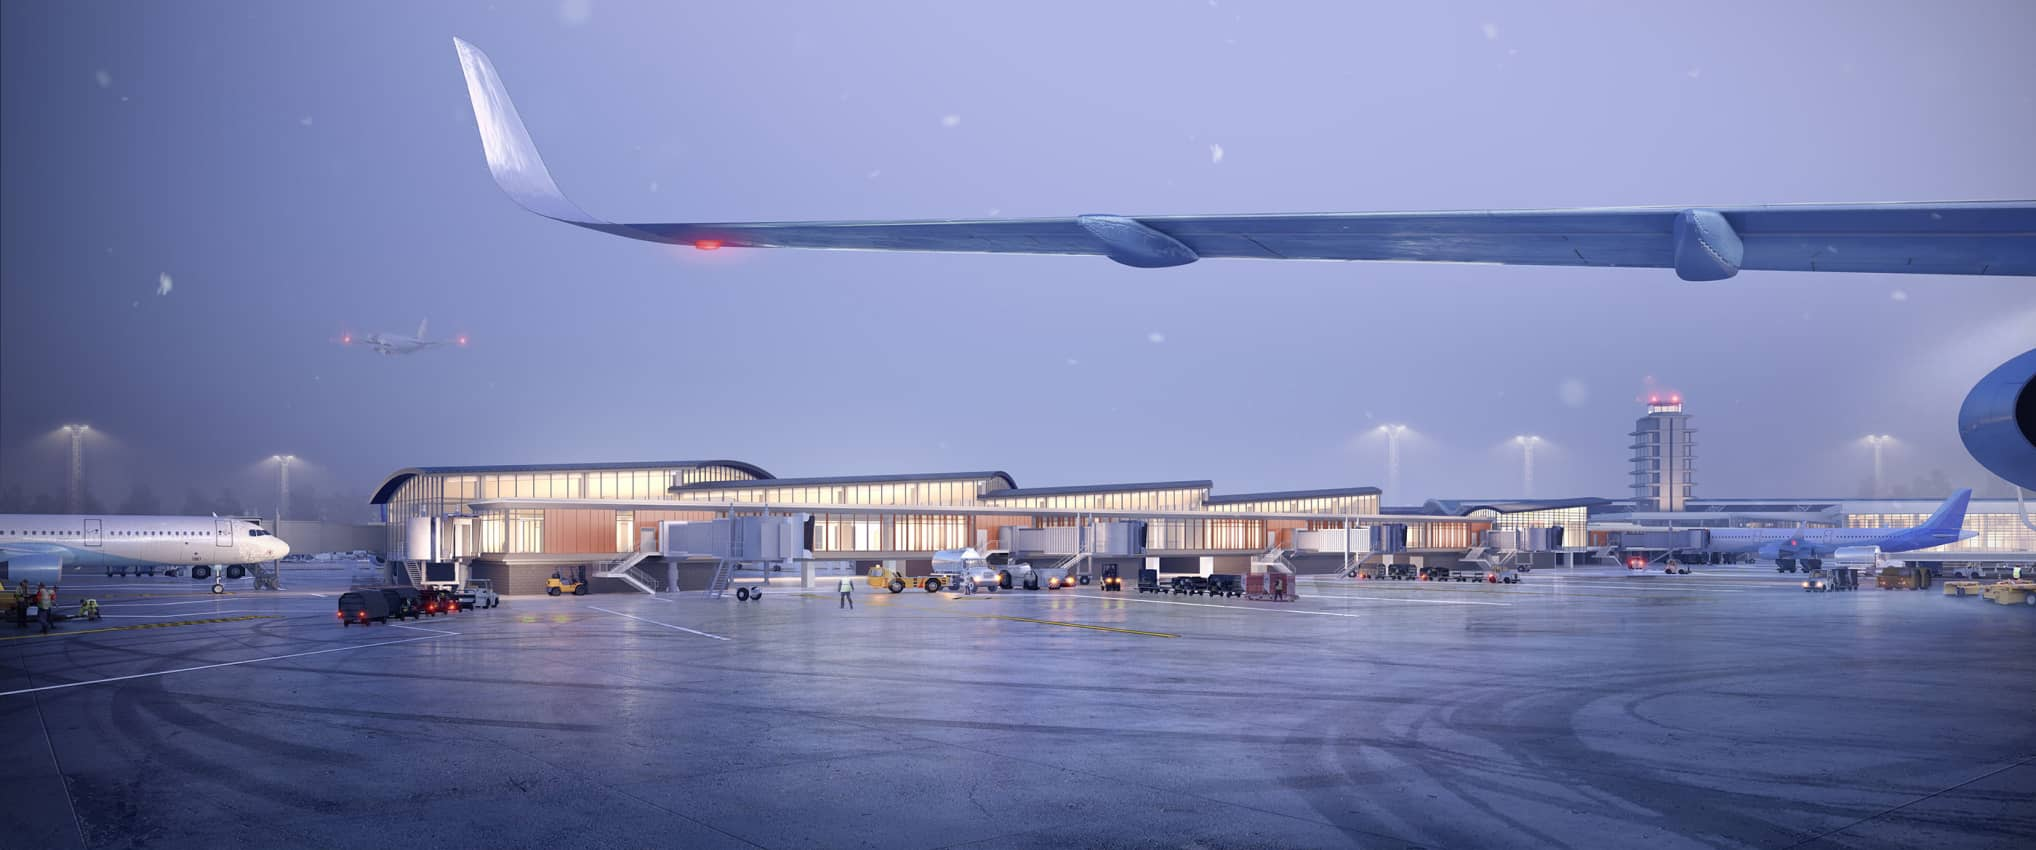 Gerald R. Ford International Airport Project Elevate: Concourse A Expansion